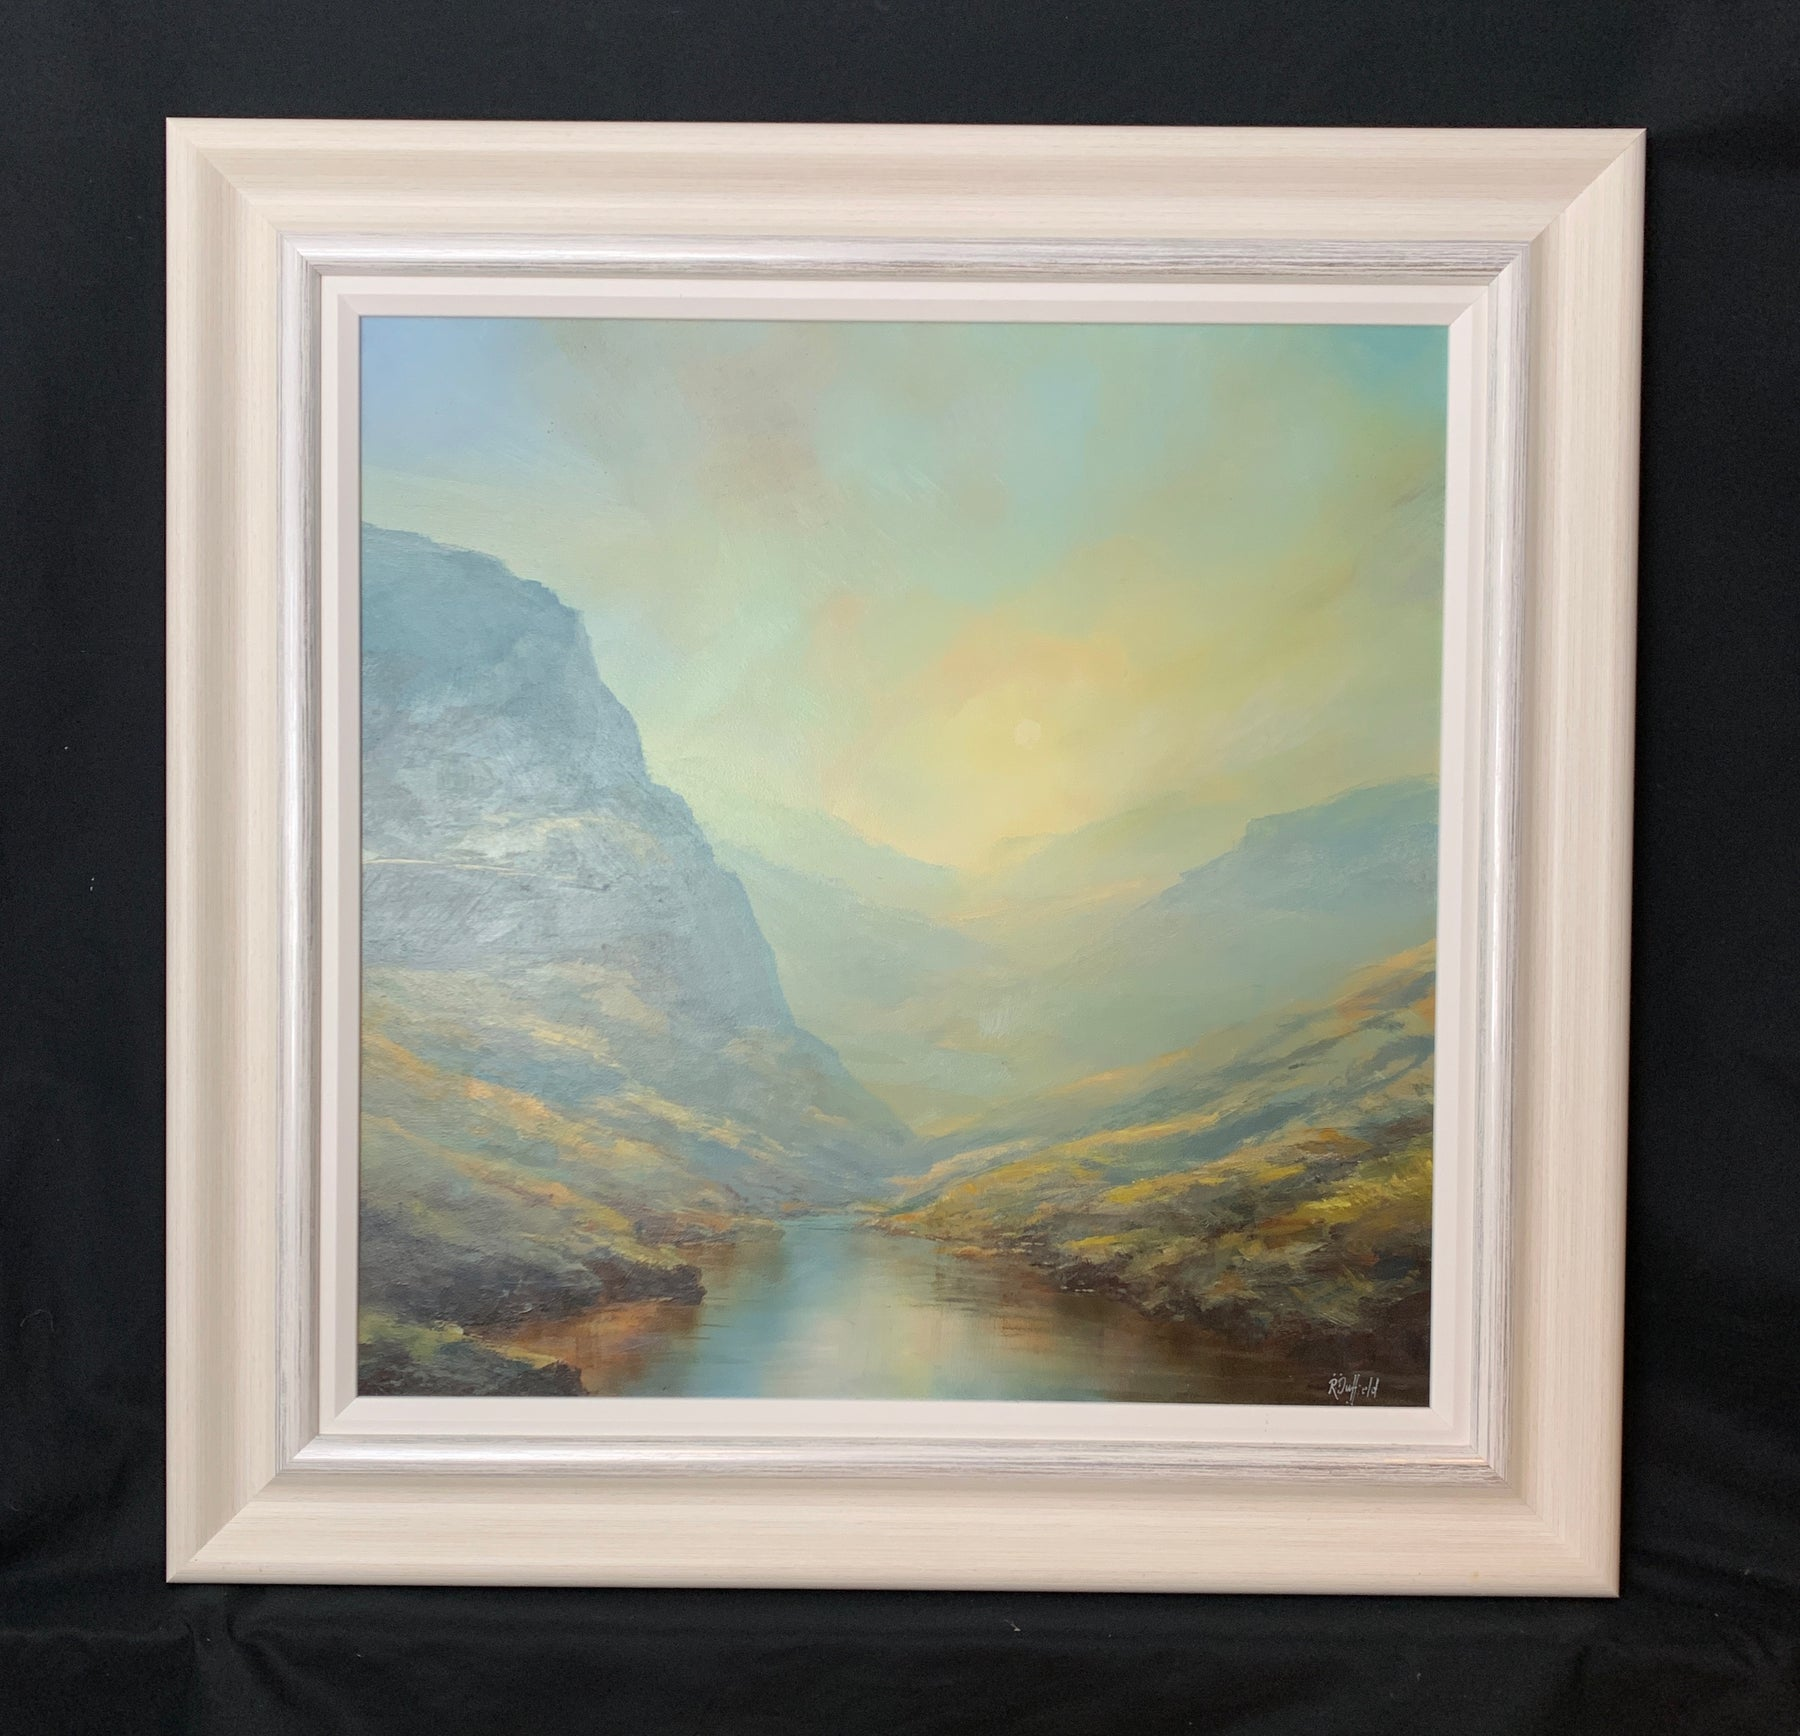 Rick Duffield 'Haze Over The Pass' New Original Artwork For Sale